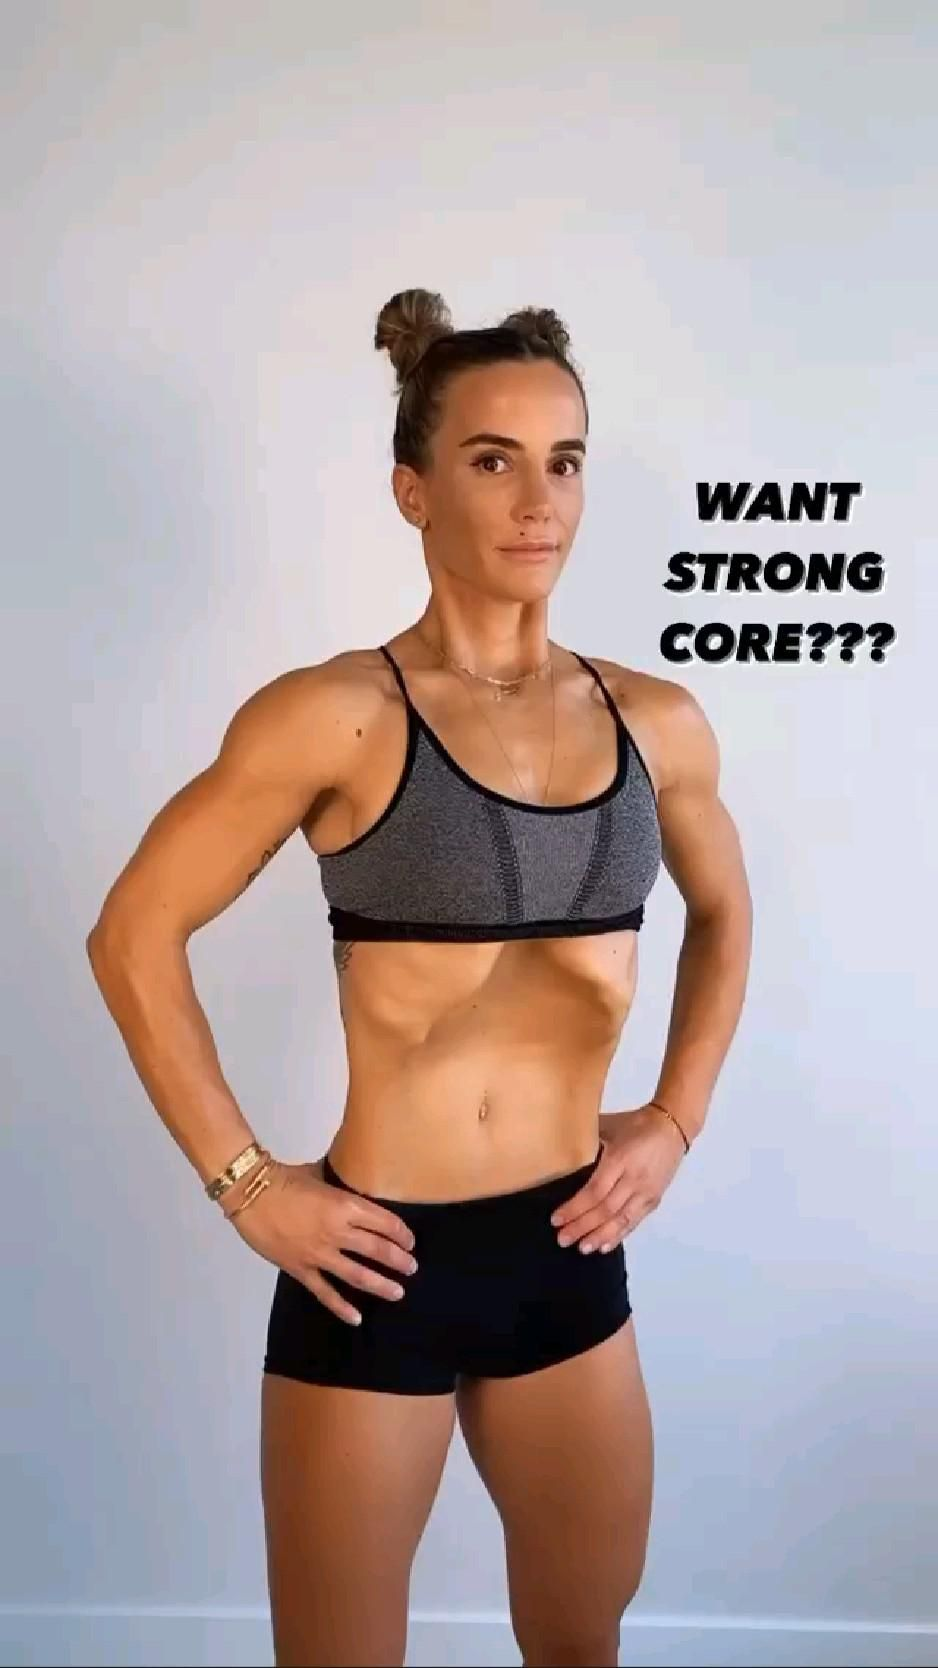 Want To Cinch Yo Waist Stronger Core Engaged Deep Abdominals Etc Etc An Immersive Guide By Yogi